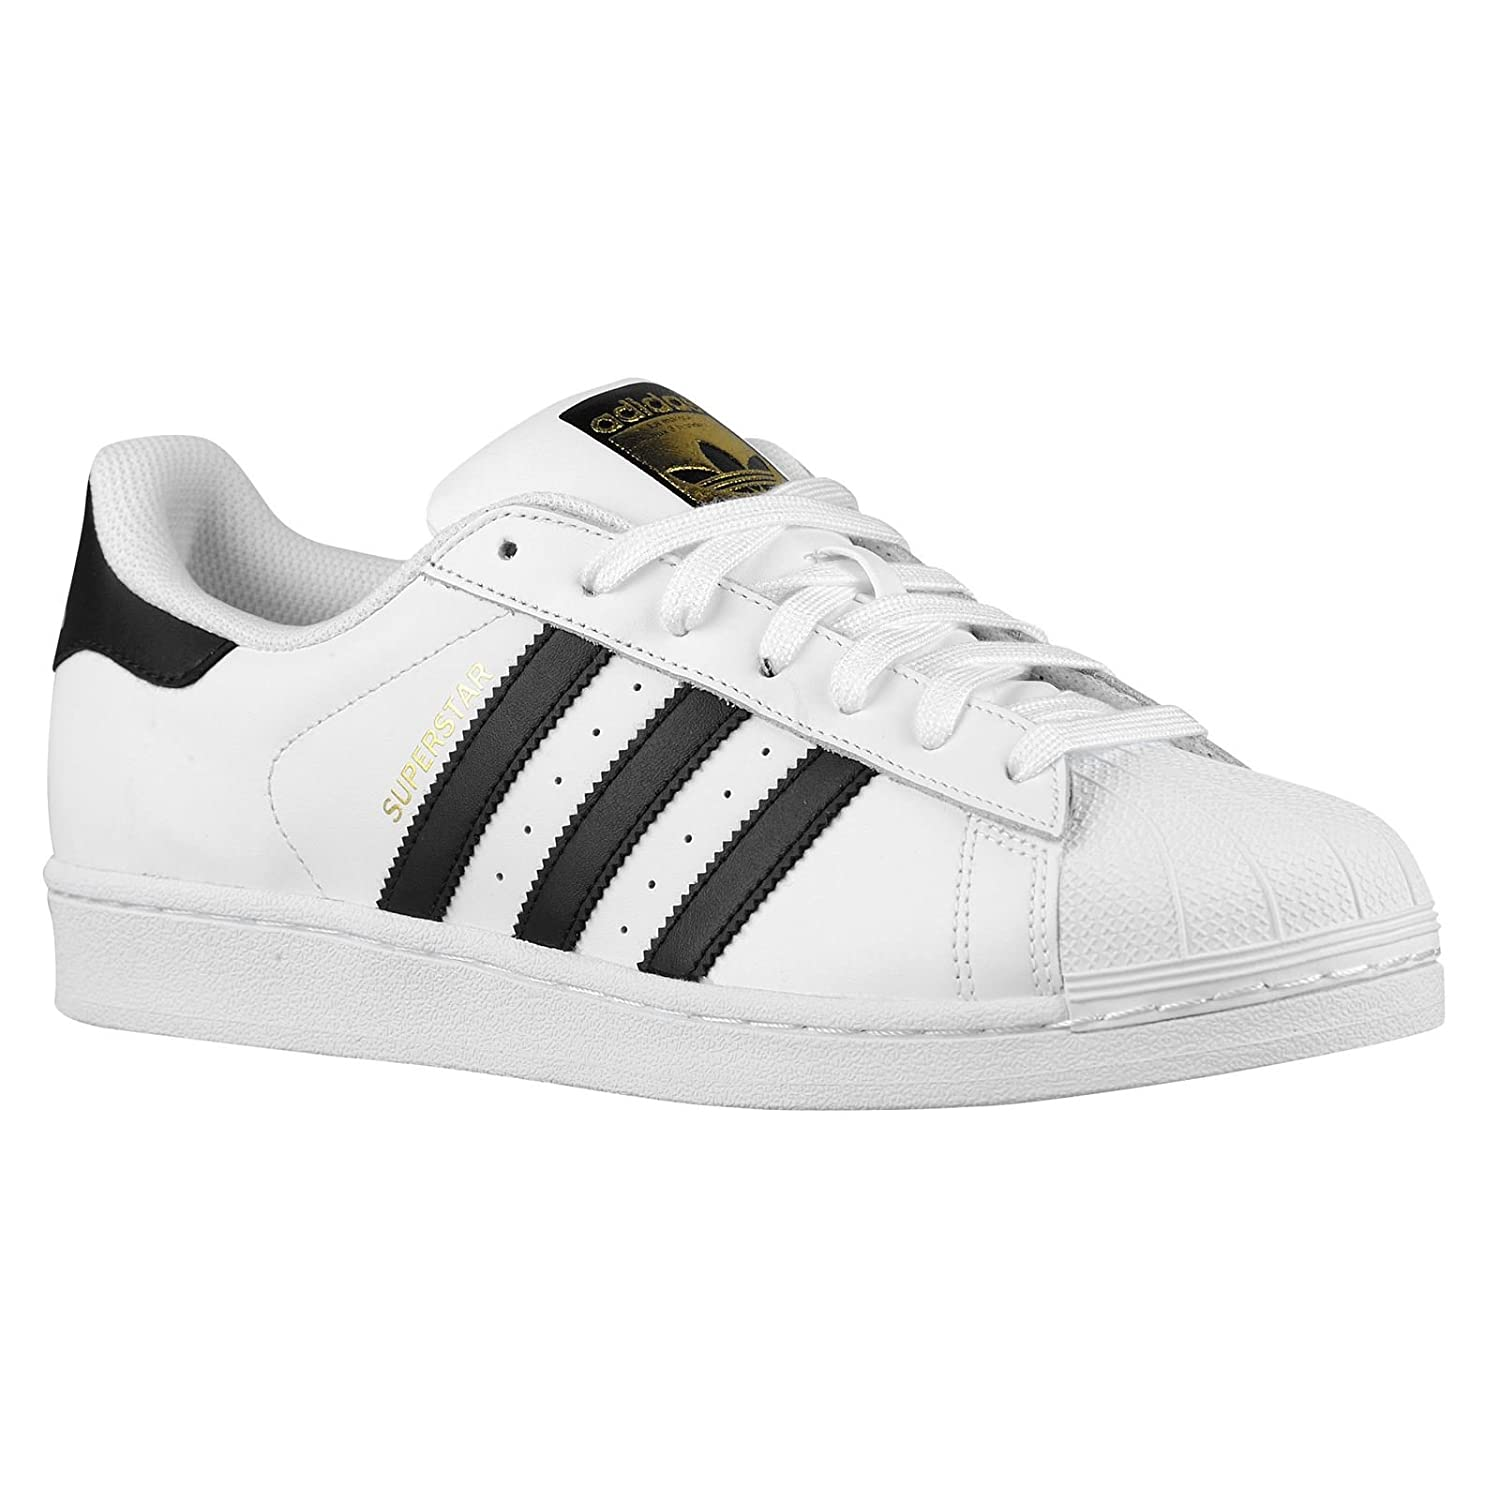 reputable site fcf18 891ac adidas Originals Men's Superstar Casual Sneaker, White/Core Black/White,  9.5 M US